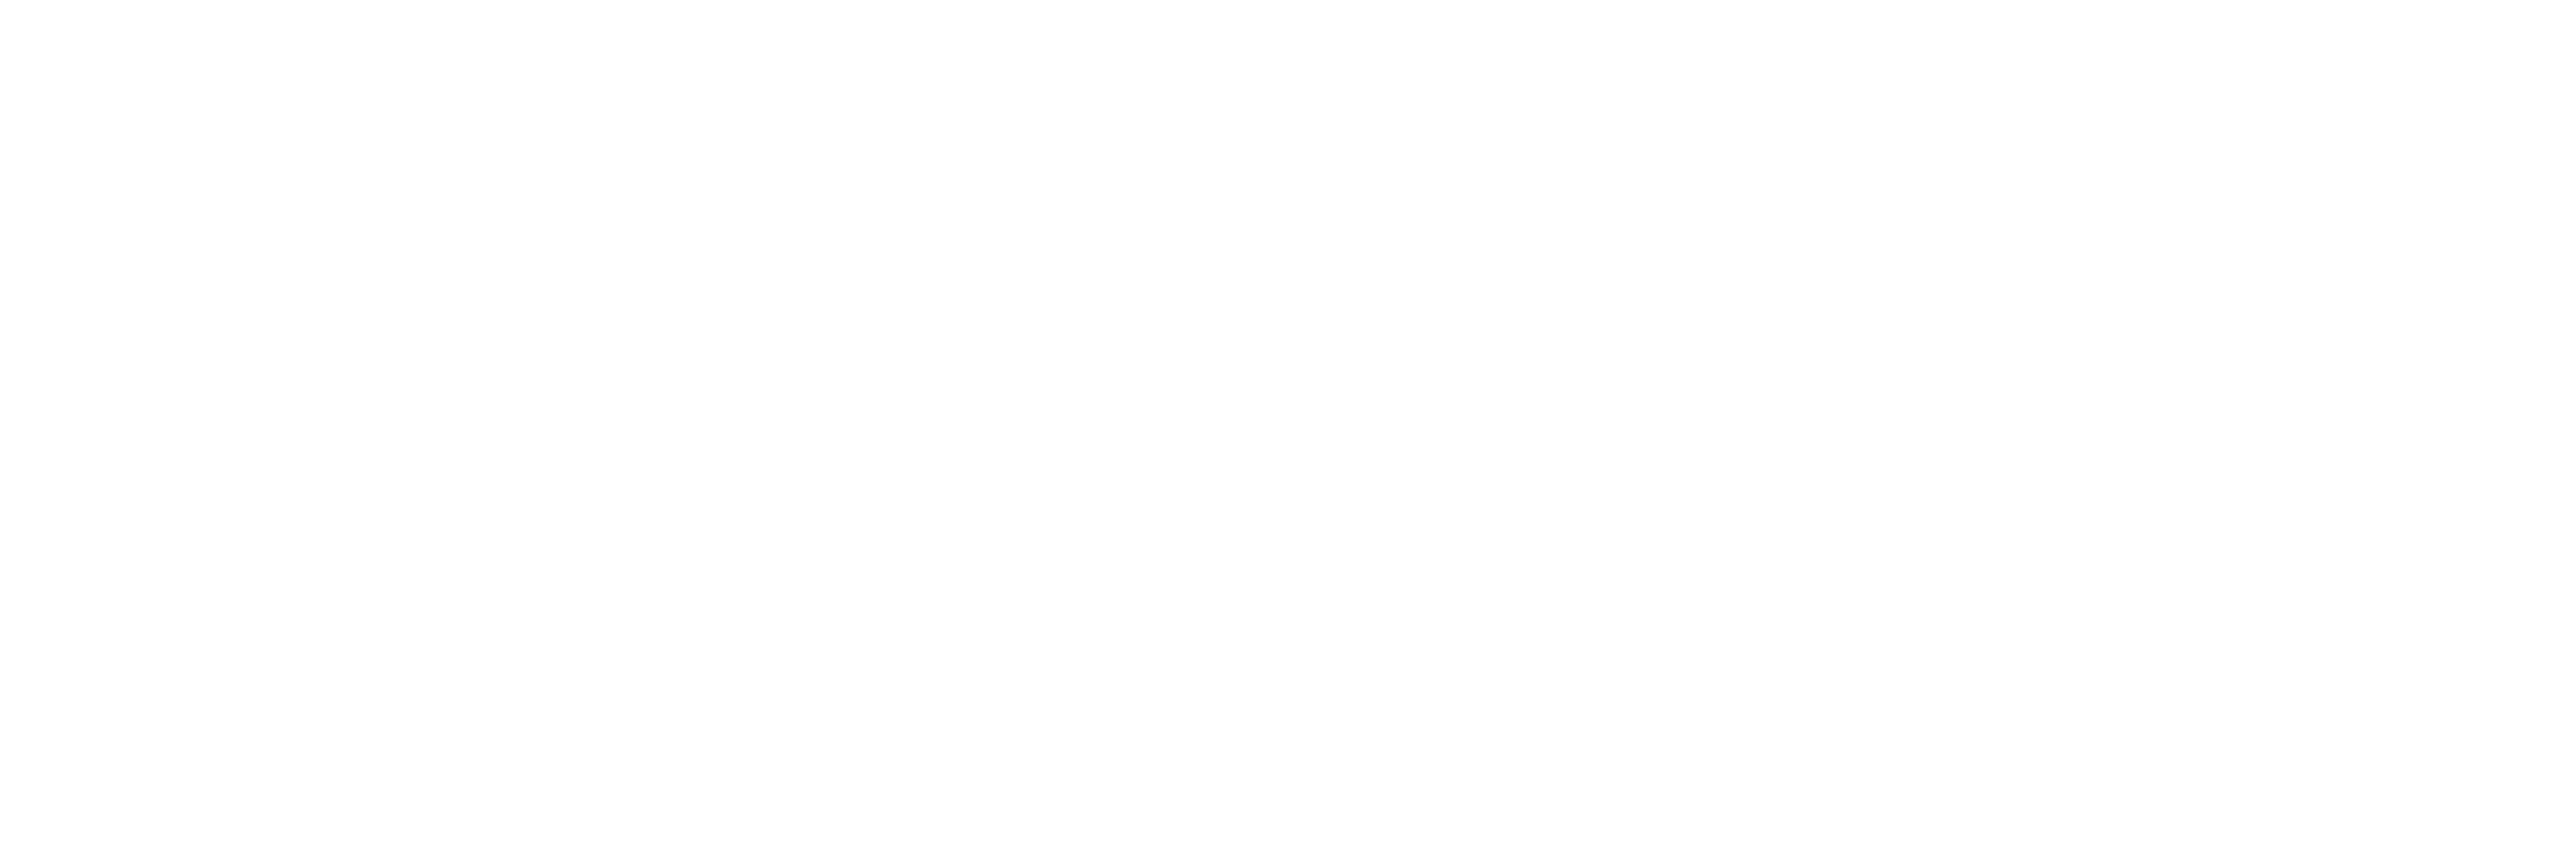 The logo of music Aruba Red, a  client of The Wrighty Media Agency